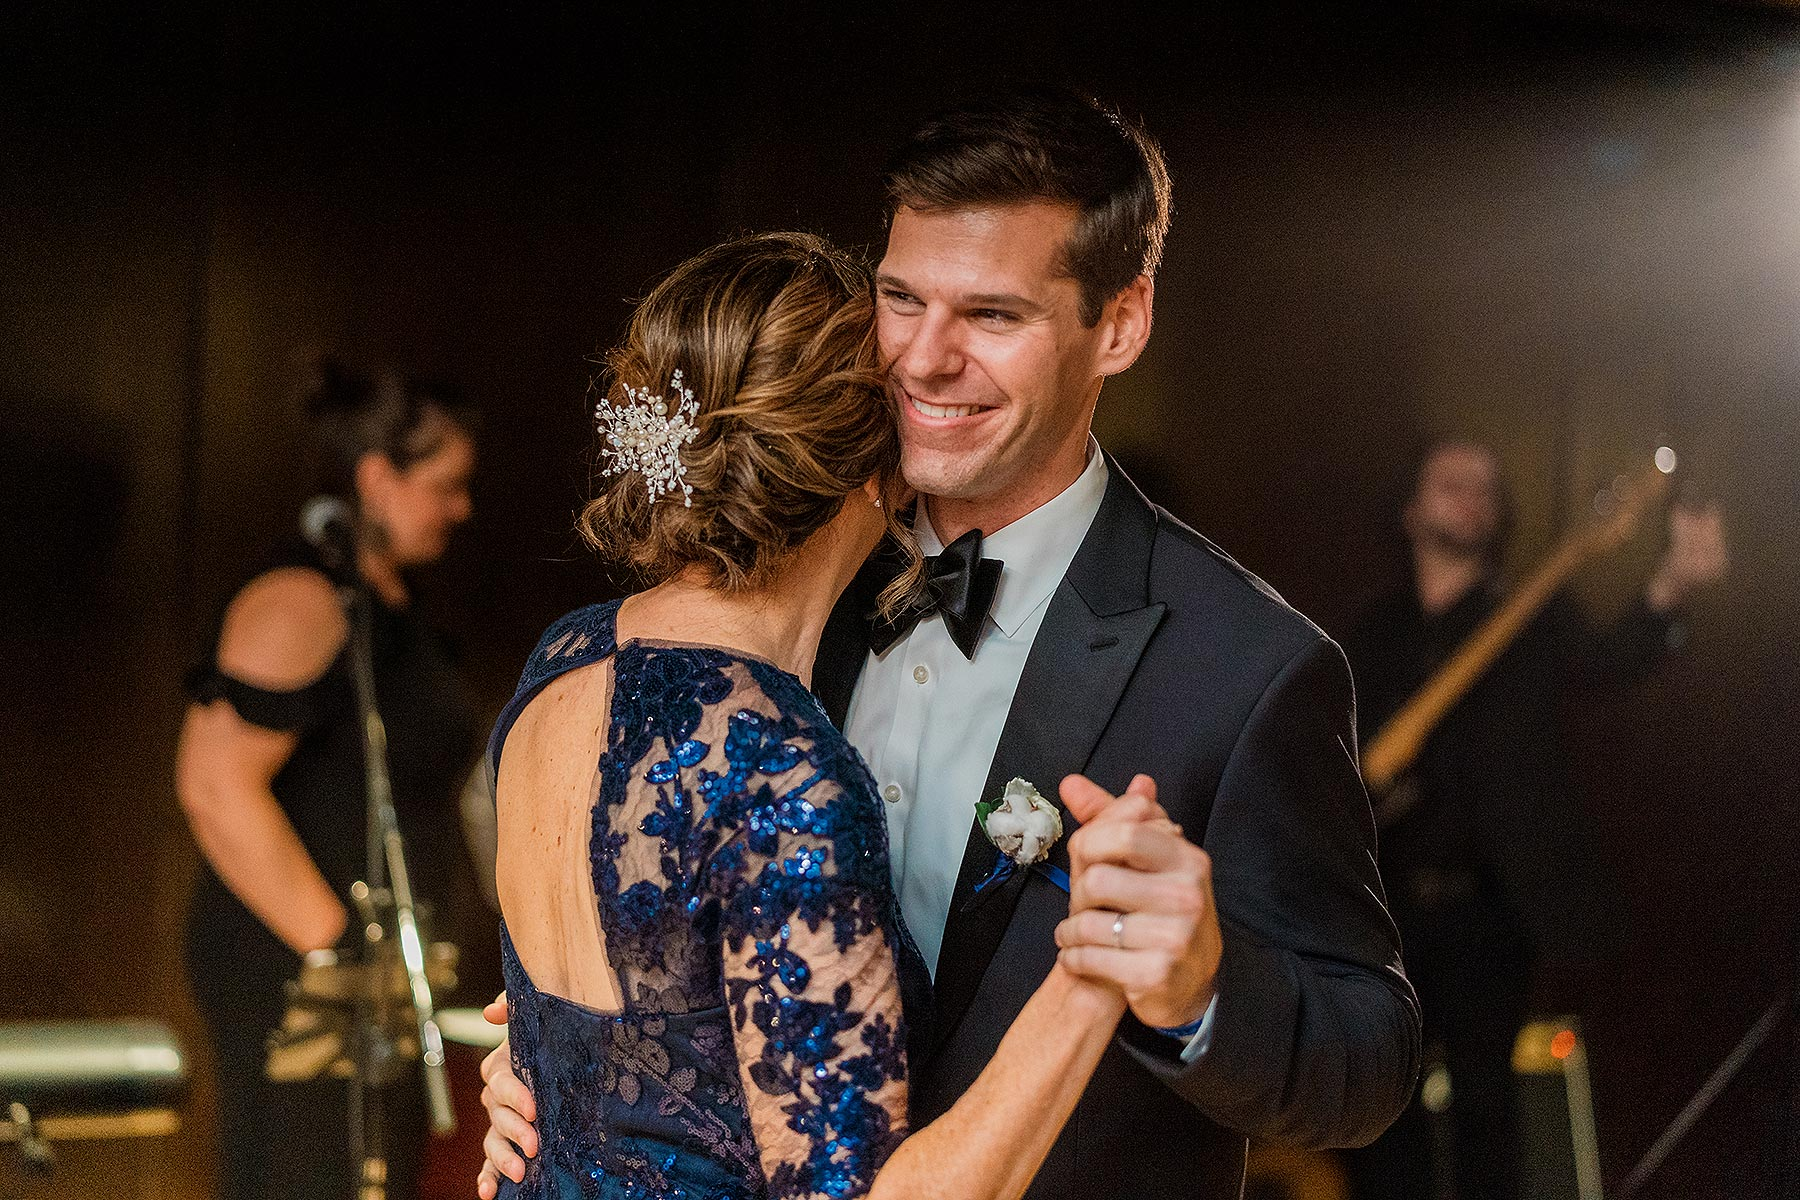 groom smiling as he dances with mom at district winery wedding reception by Washington DC Wedding Photographer Adam Mason